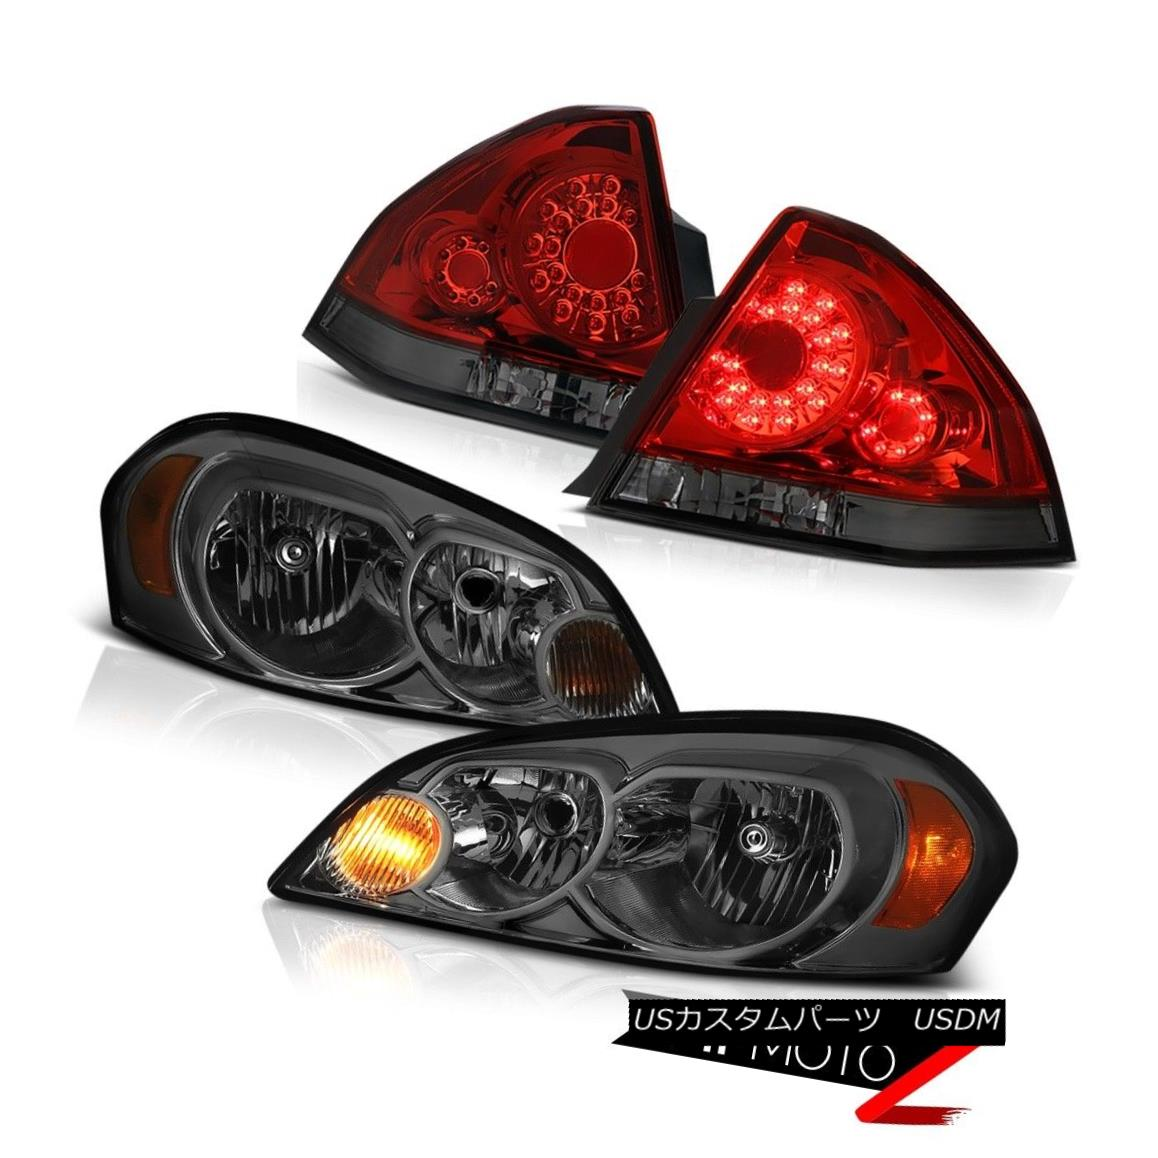 テールライト 06-13 Chevy Impala LS Red Smoke Tail Lamps Dark Headlights LED